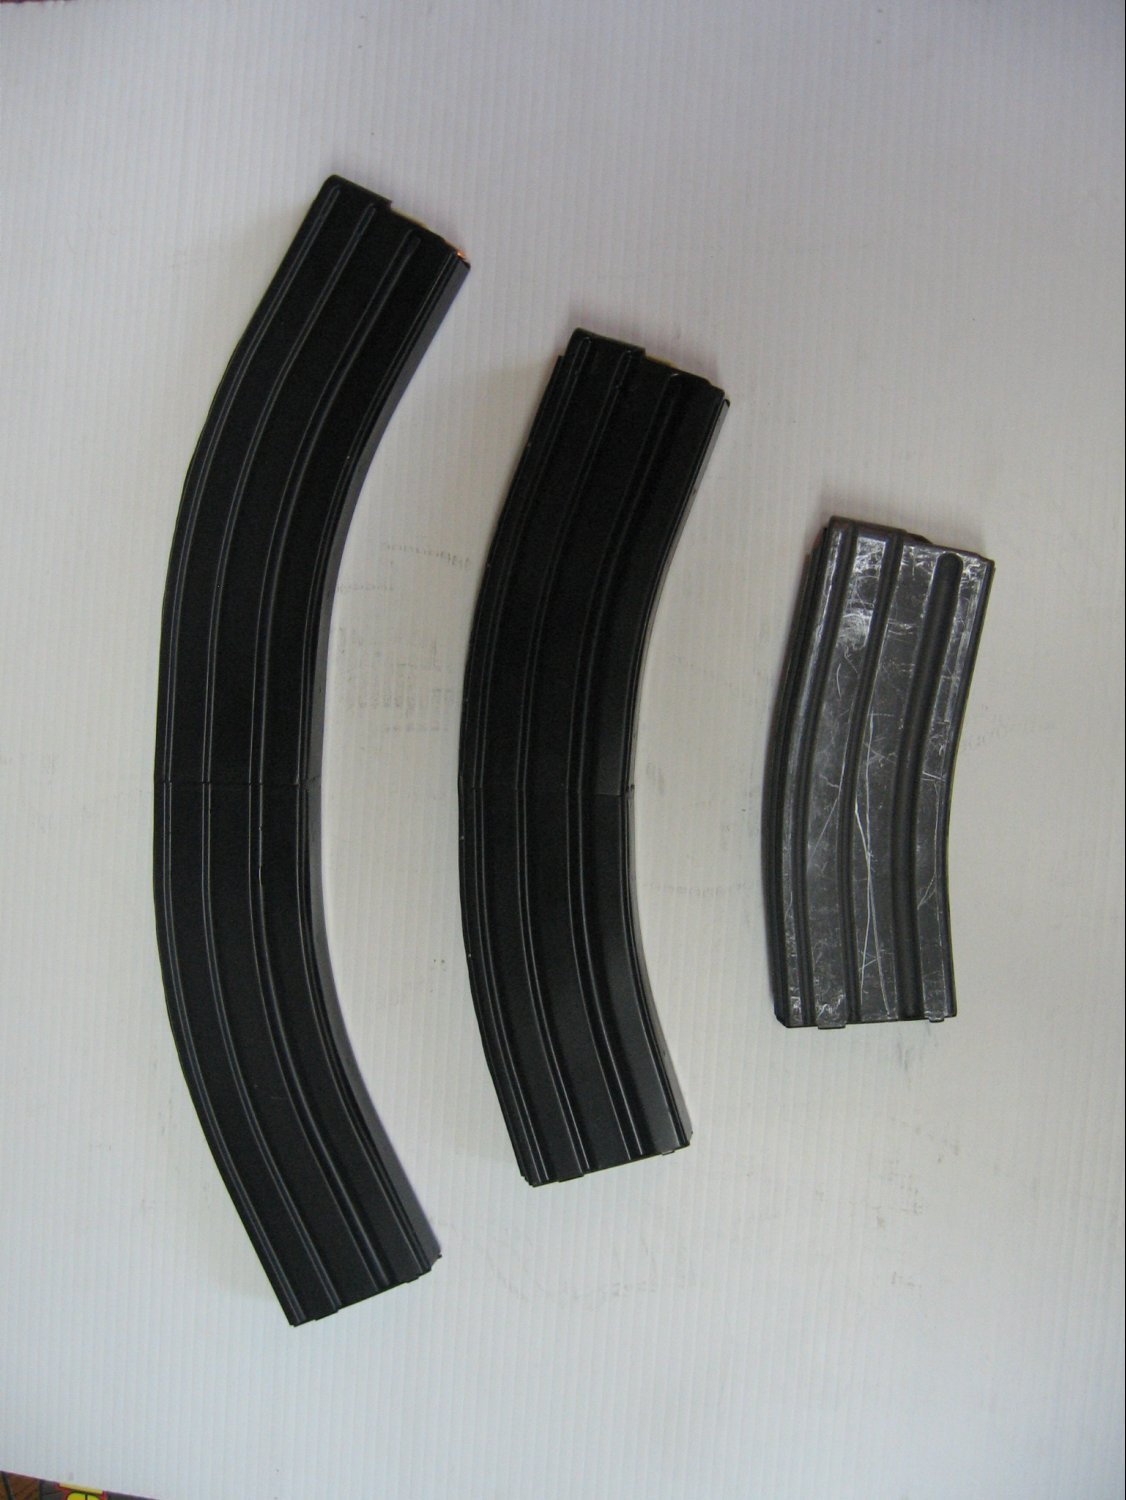 Higher Capacity 55 Round and 75 Round AR 15 5.56mm Rifle Magazines Company Shot <!  :en  >Higher Capacity 55 Round 5.56mm NATO and 32 Round 7.62mm NATO Rifle Magazines for Tactical AR (AR 15 and SR 25 type) and M14/M1A Rifles/Carbines/SBRs  (Photos and Video!) <!  :  >